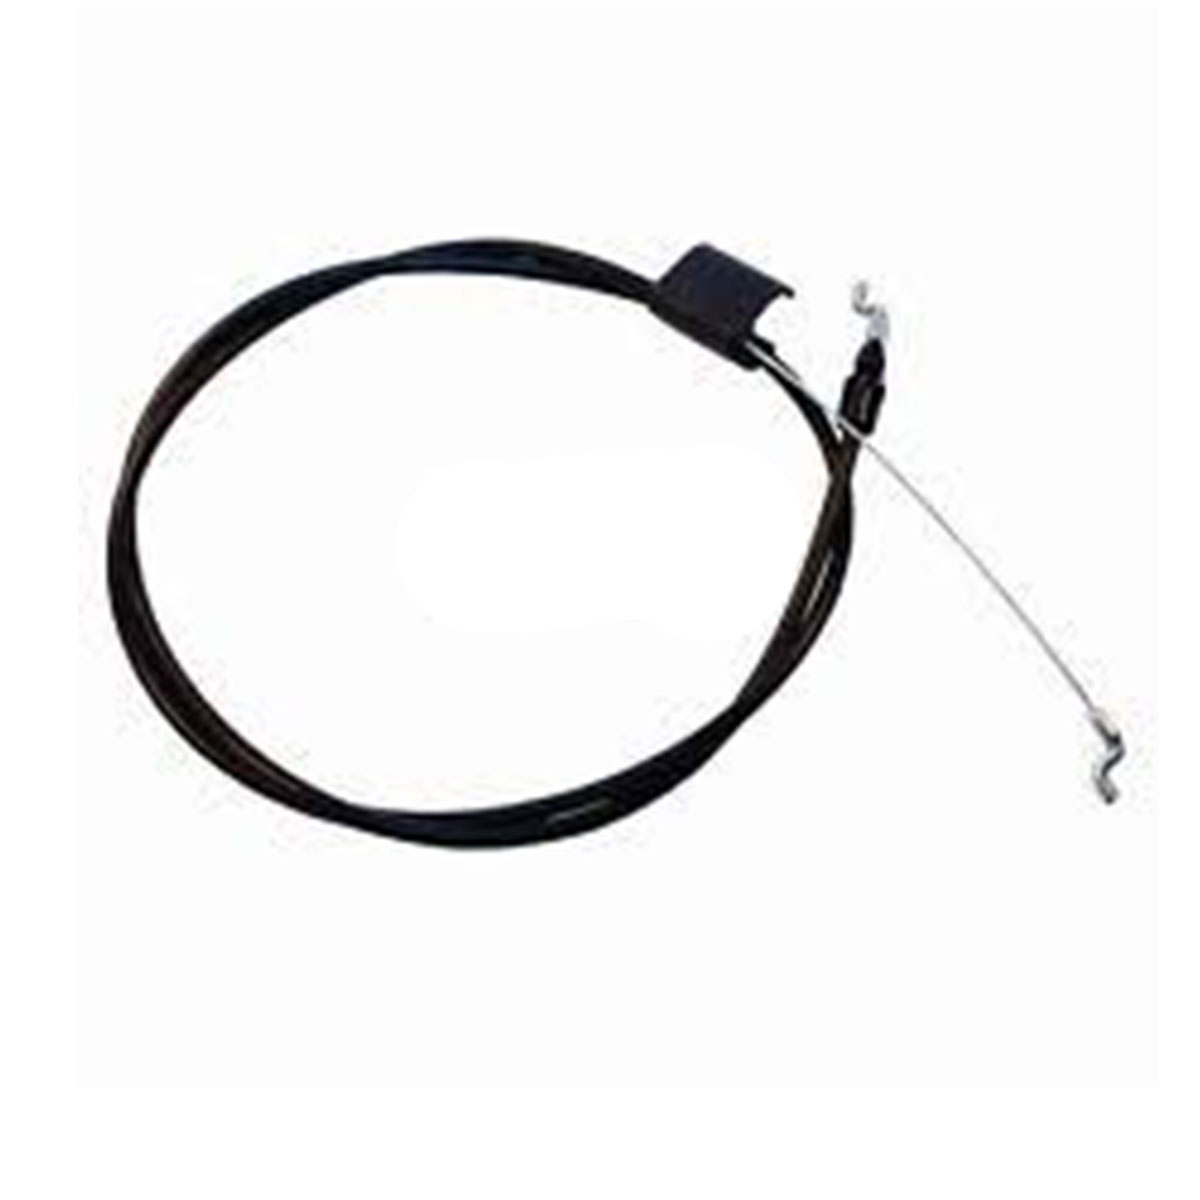 2 Way Control Cable 946-04238